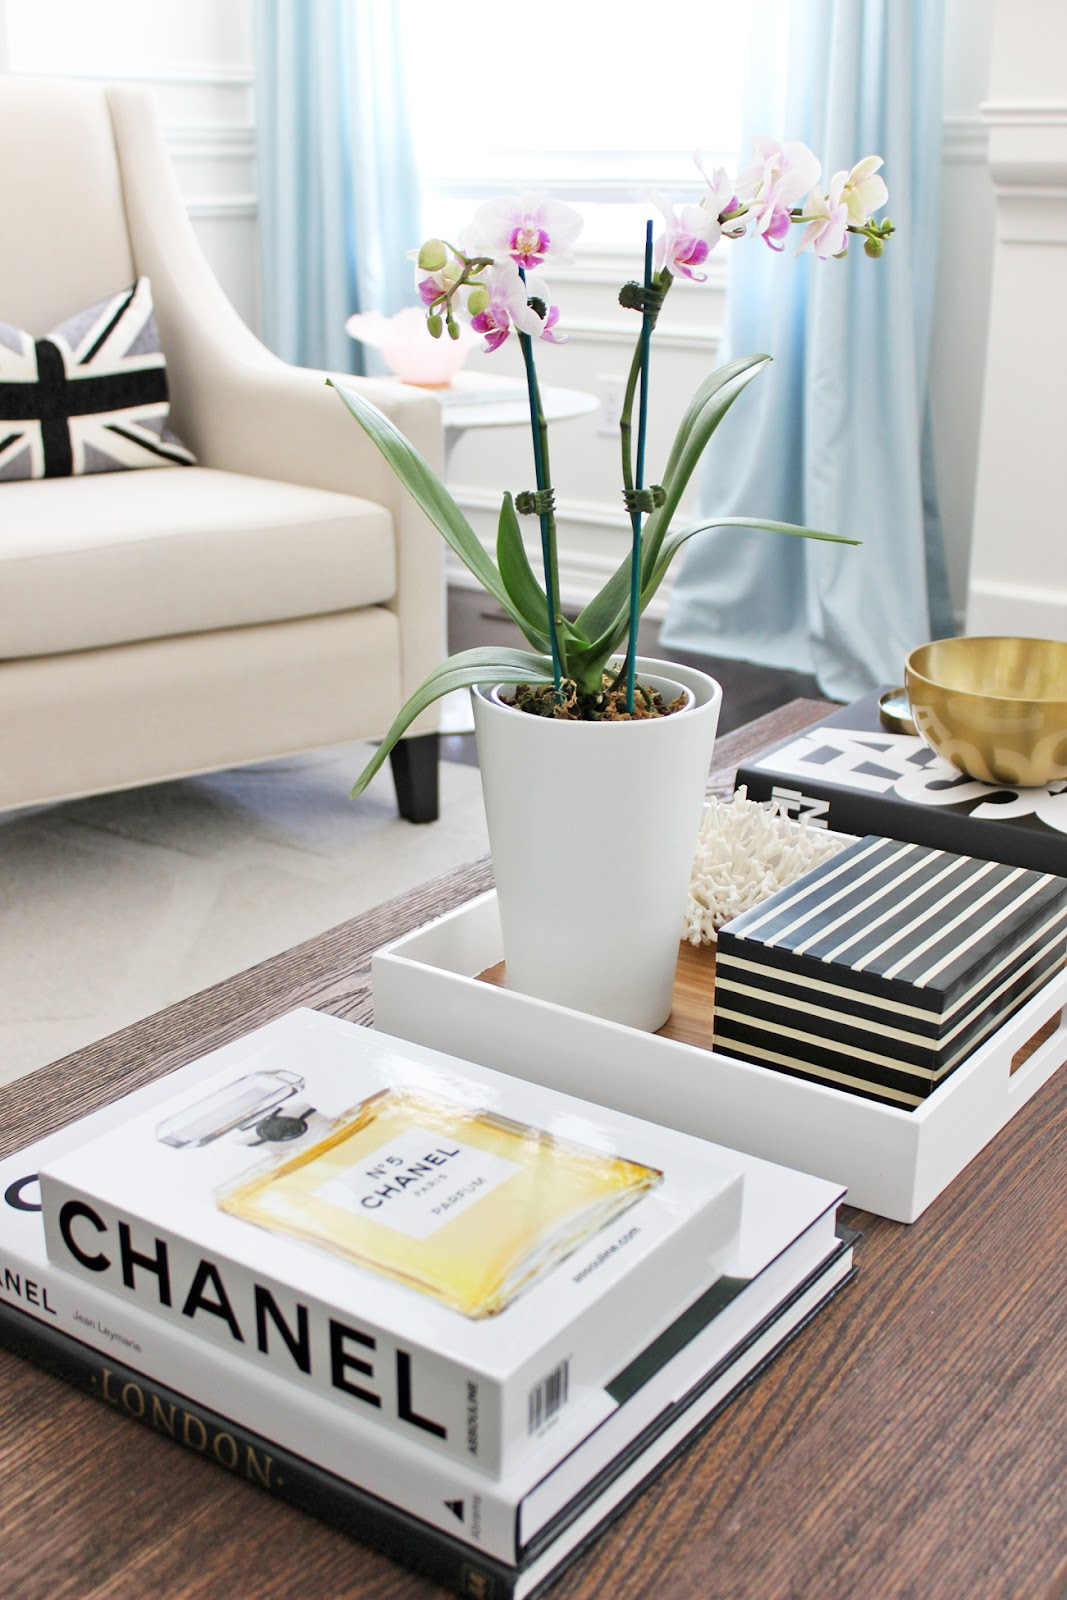 AM Dolce Vita: Chanel and Phalaenopsis Orchid